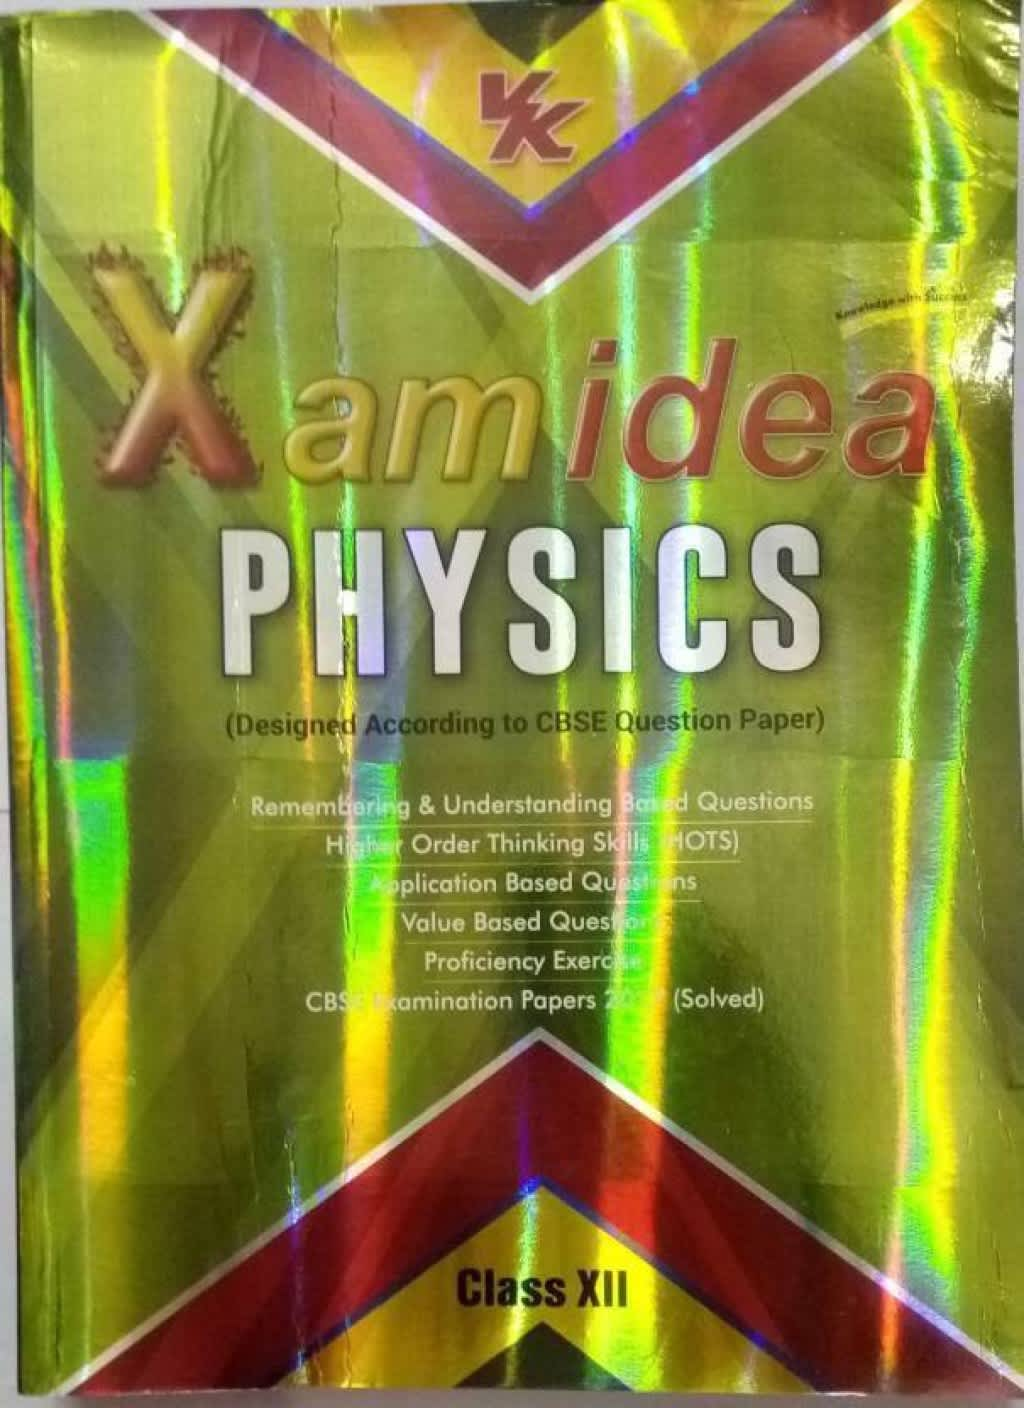 PHYSICS 12 (English, Paperback, XAM IDEA) at 307